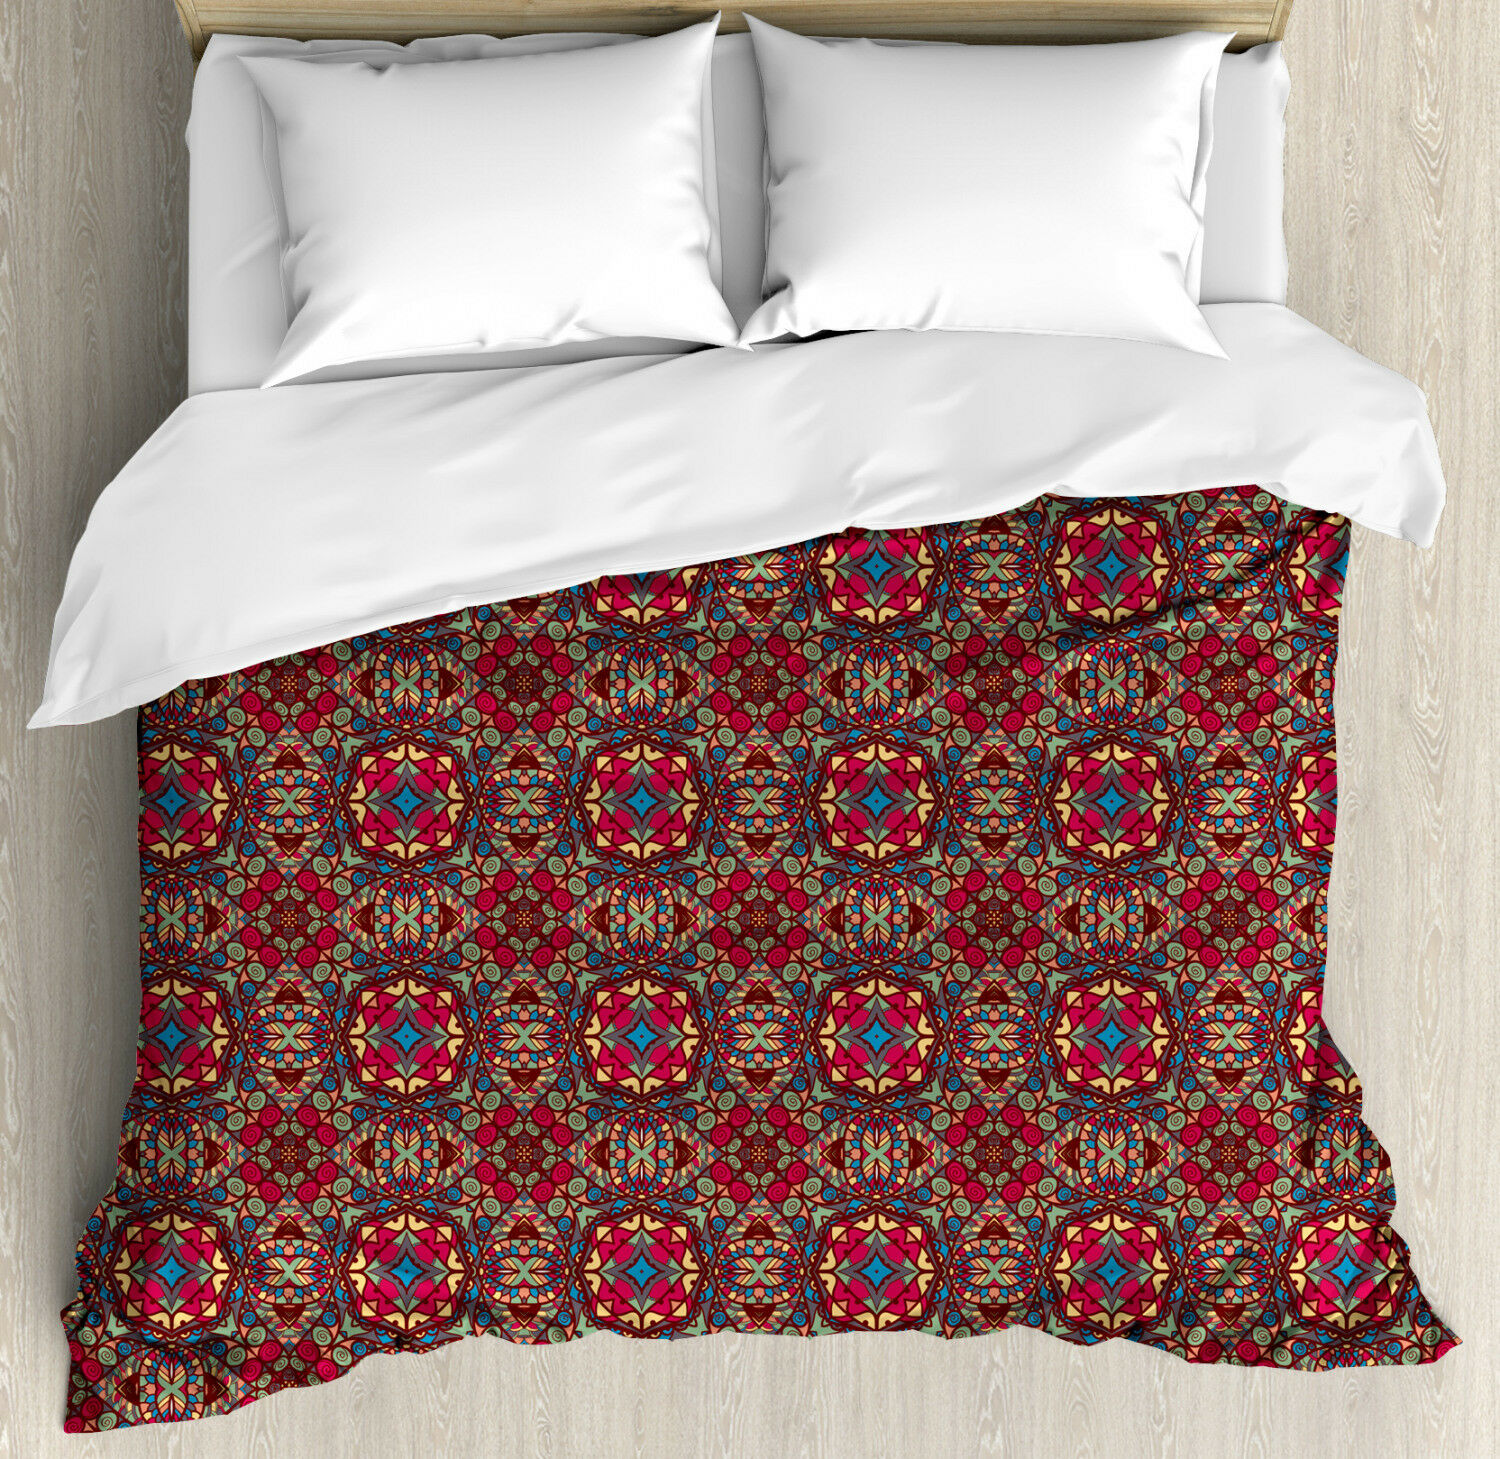 Arabesque Duvet Cover Set with Pillow Shams Vivid Oriental East Print